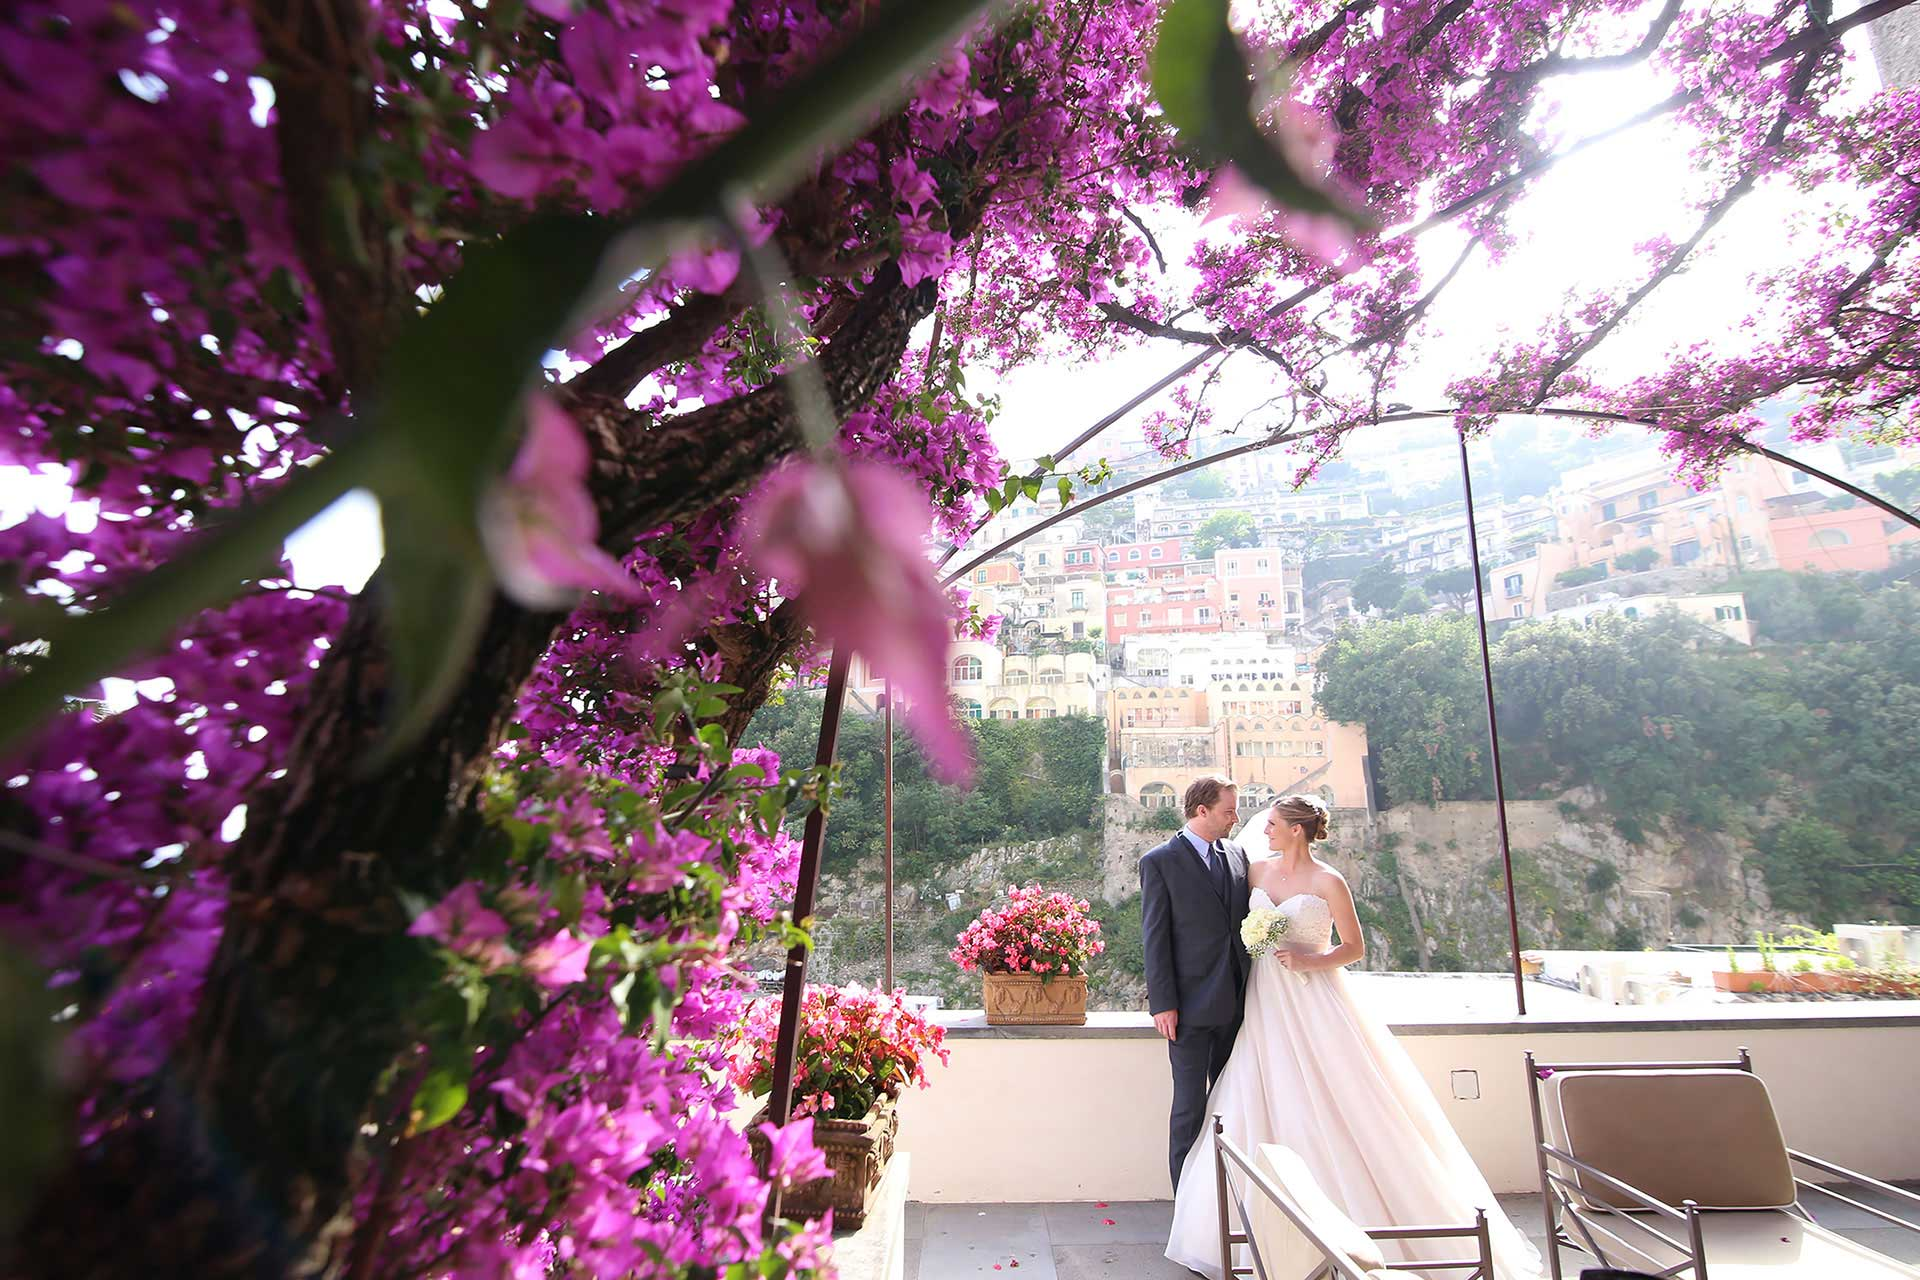 HOTEL PALAZZO MURAT, a place like a dreamy house in Positano according to Francese Photography